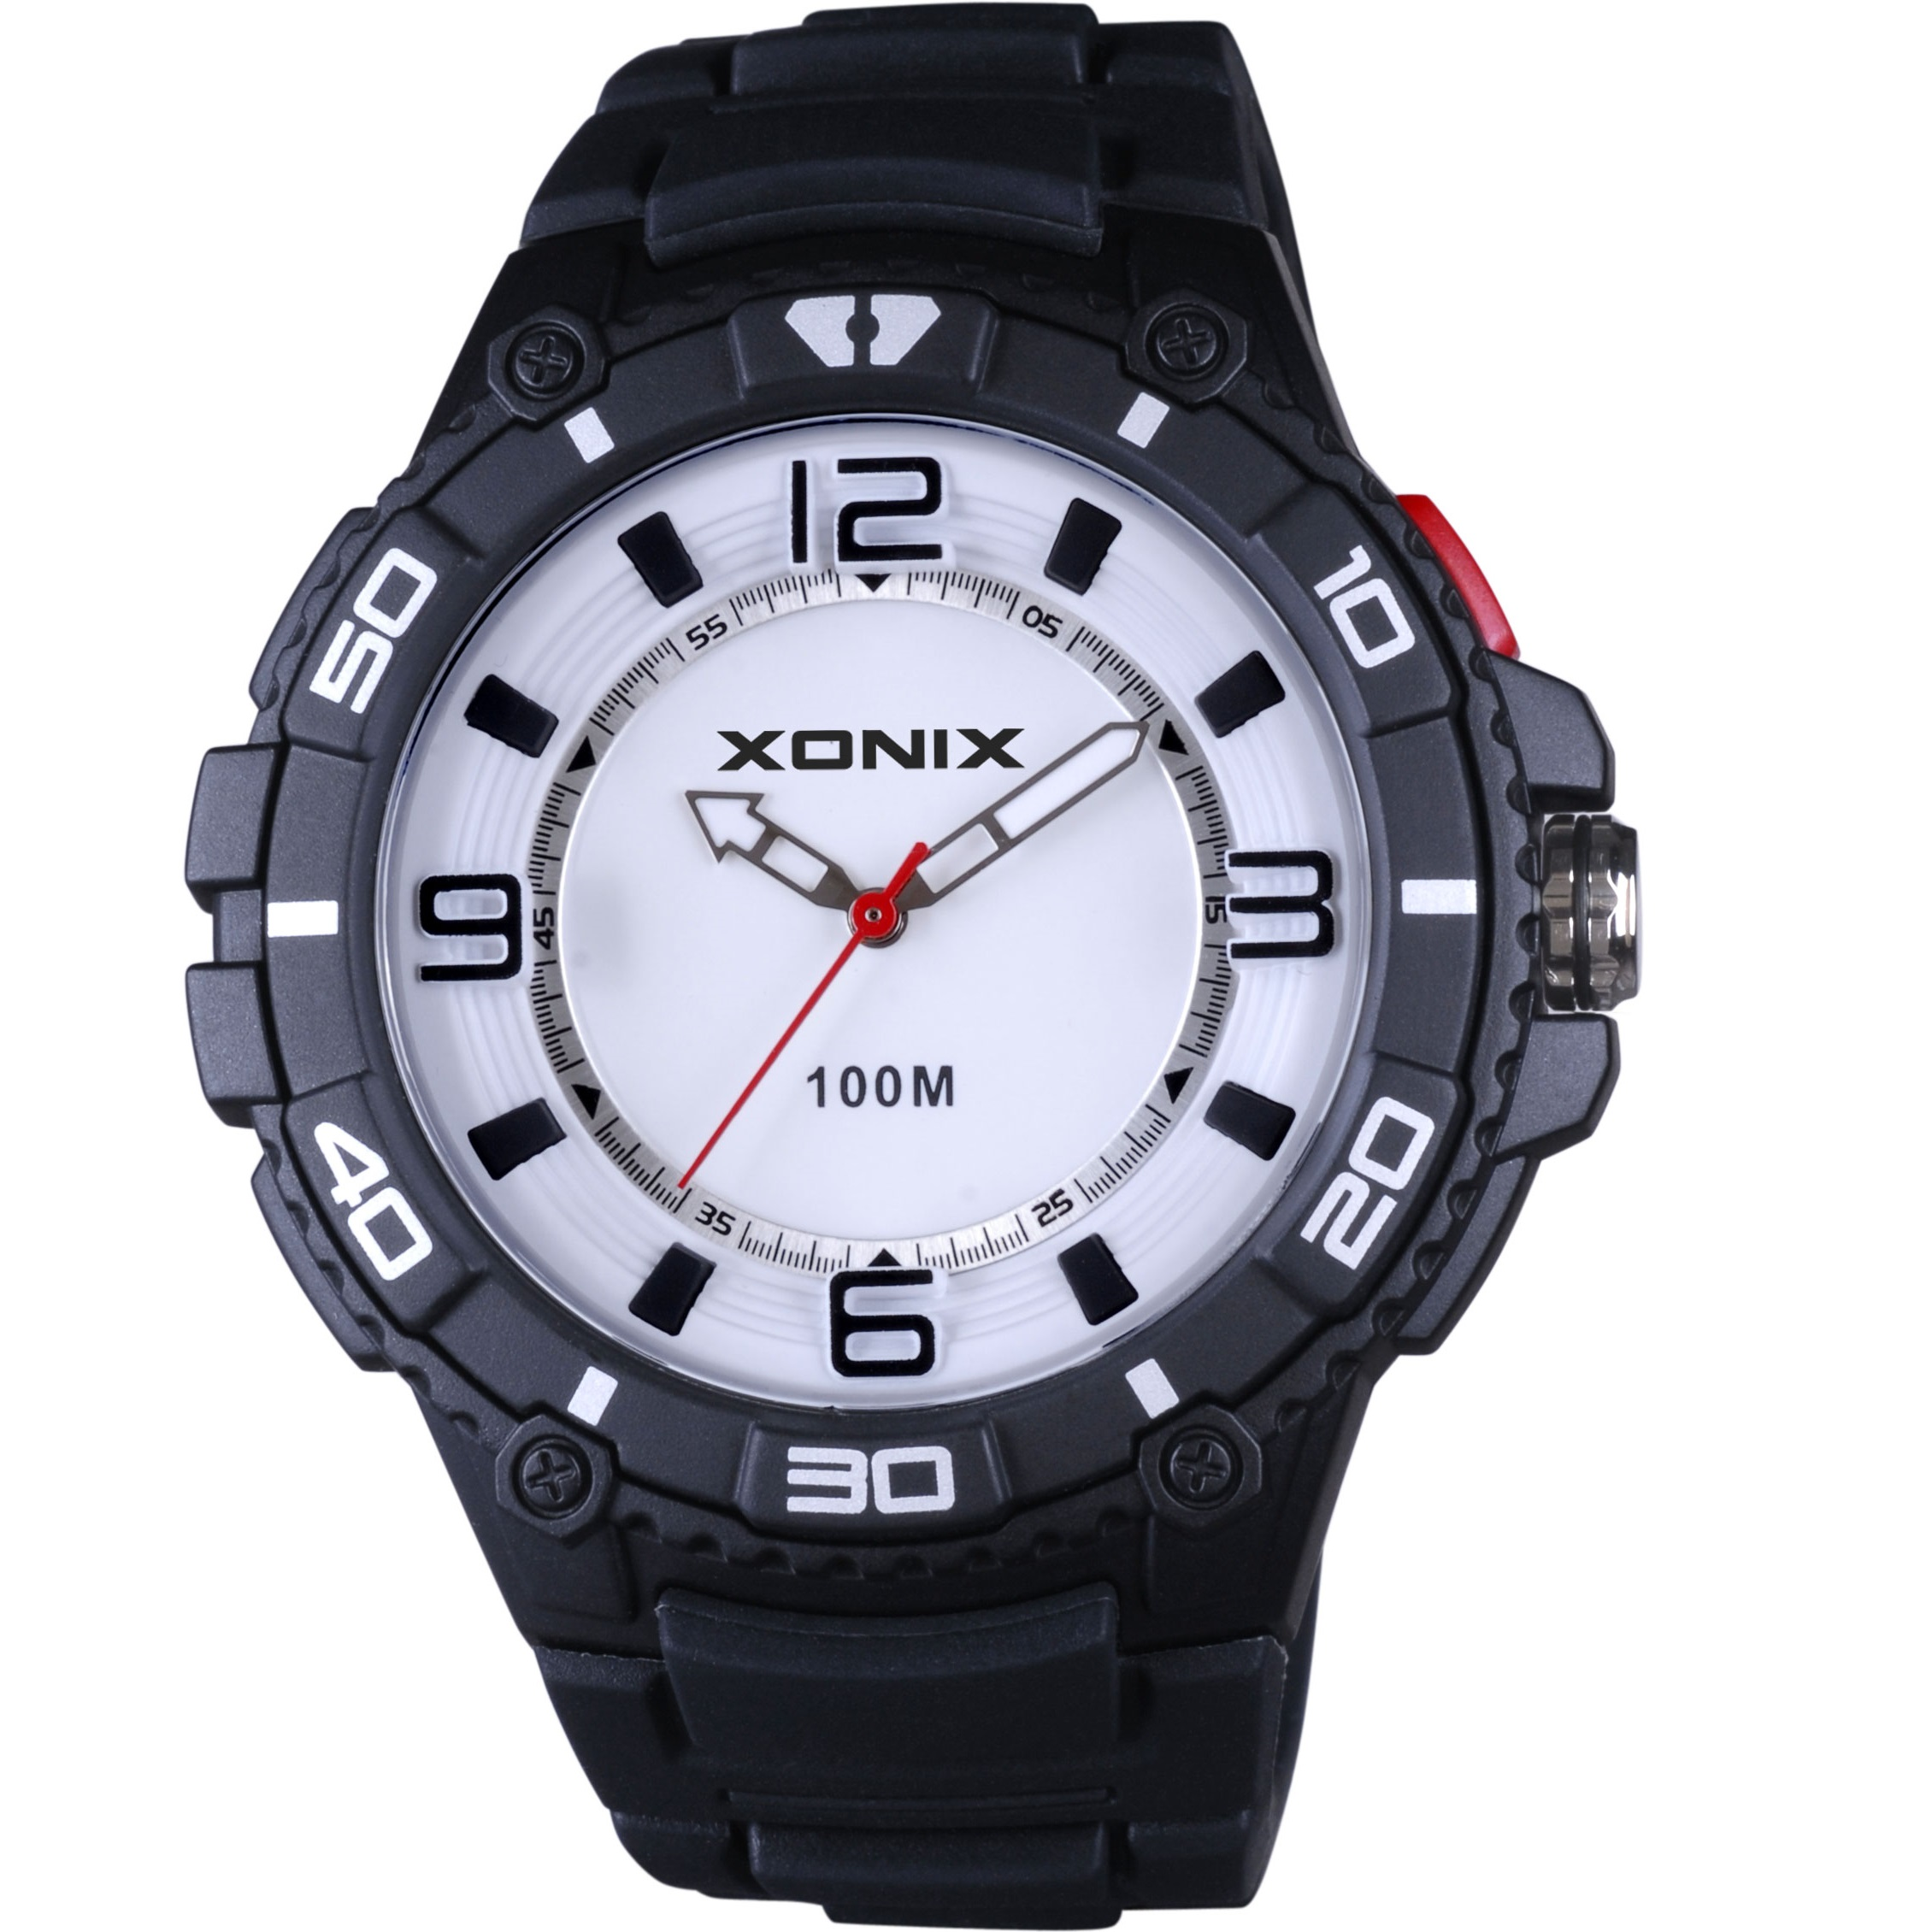 Xonix Analog Black Rubber Strap UJ-005